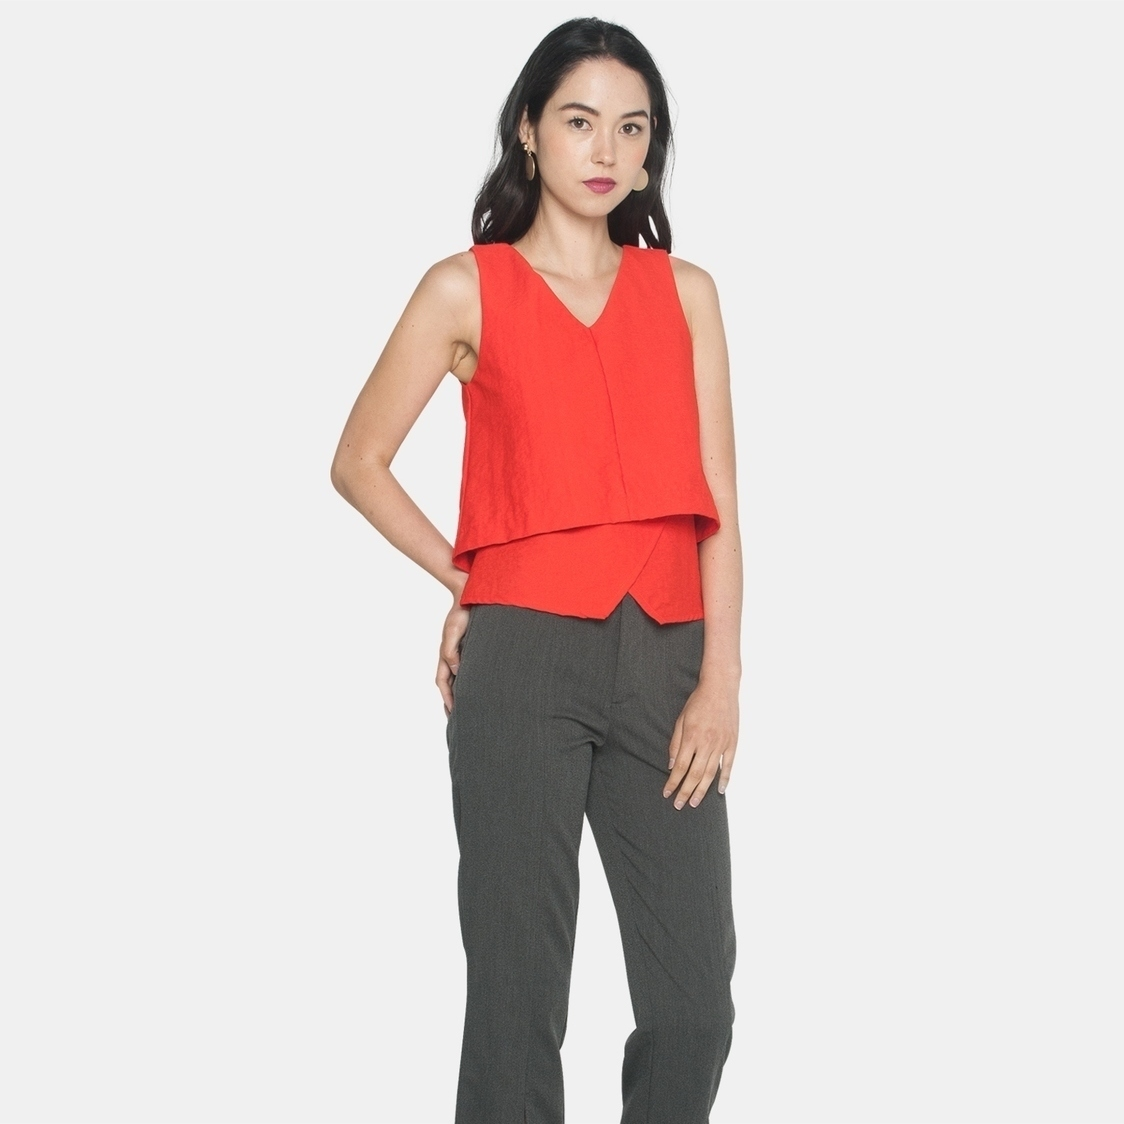 Ellysage Tiered Textured Top in Orange